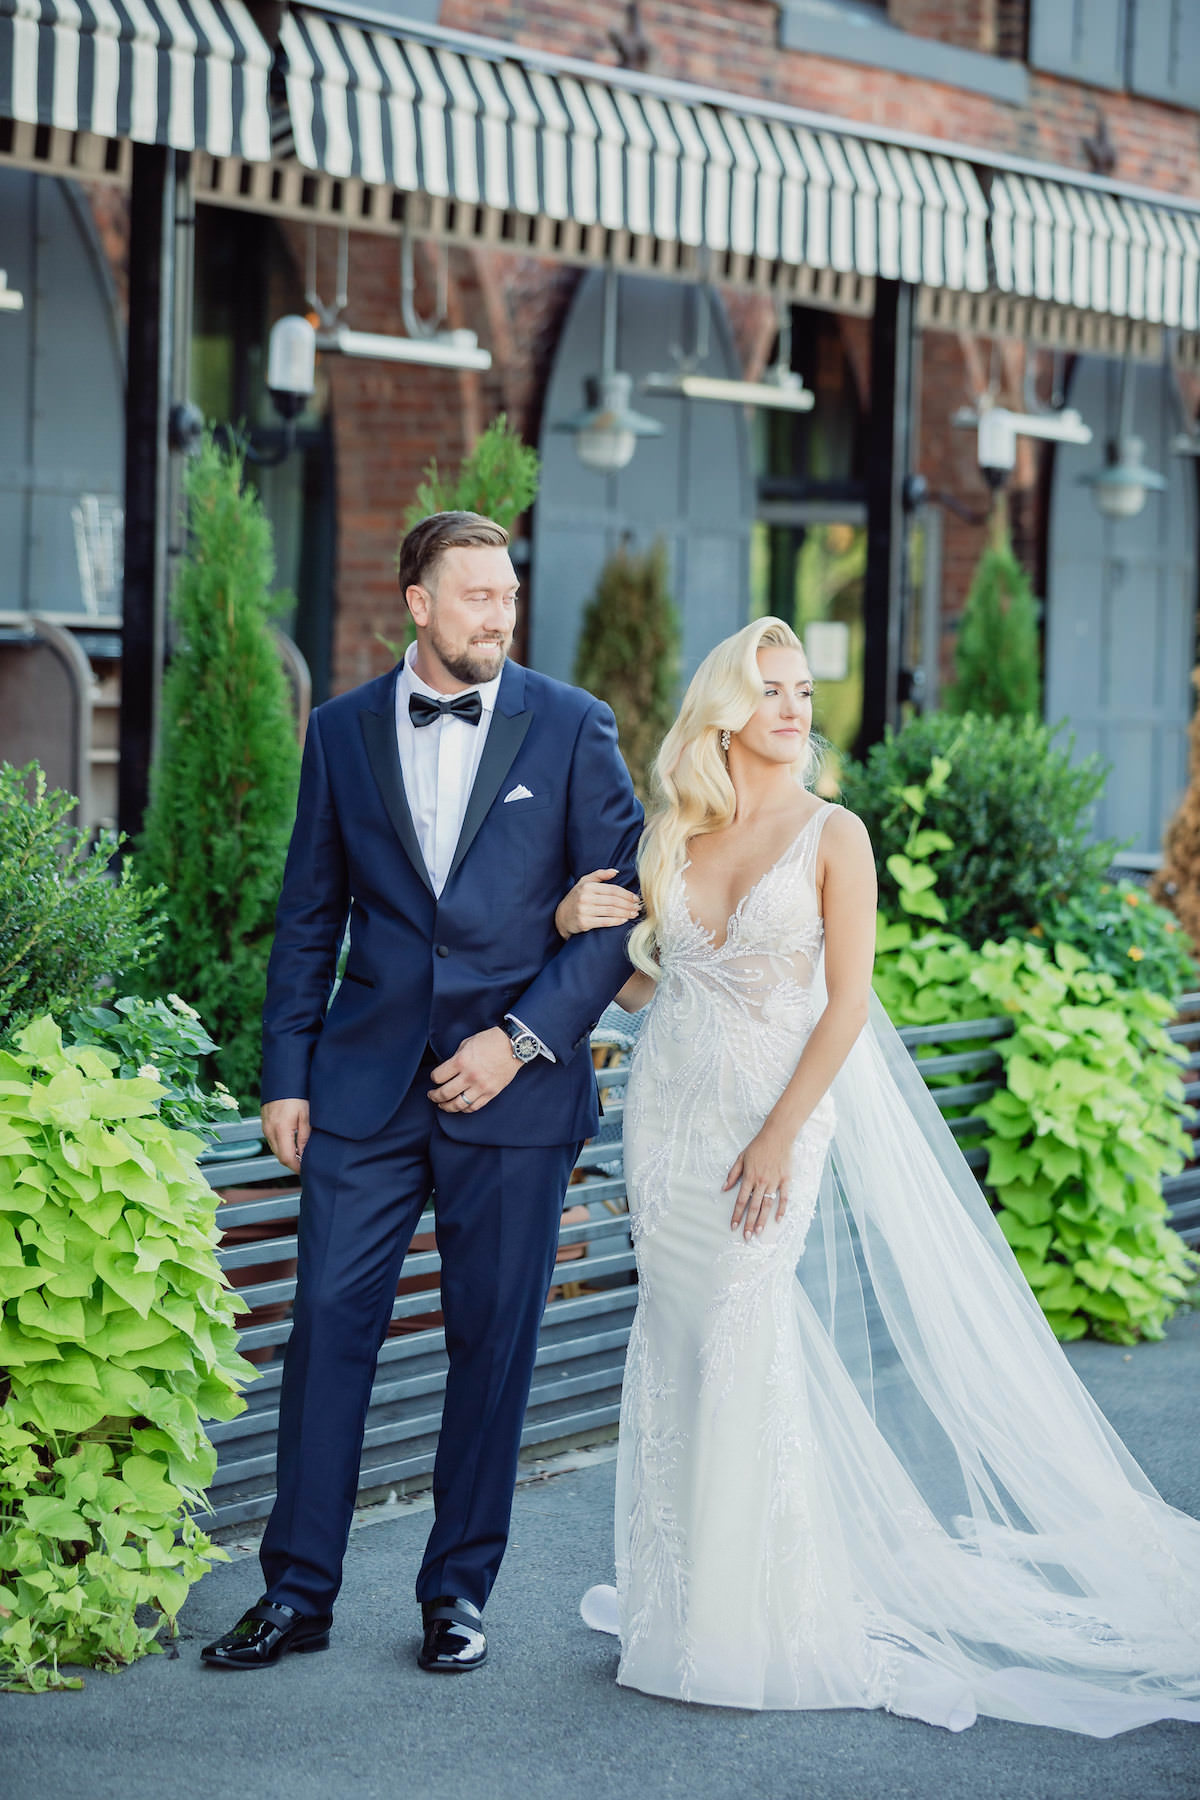 Elegant bride and groom photo - Photography: Charming Images